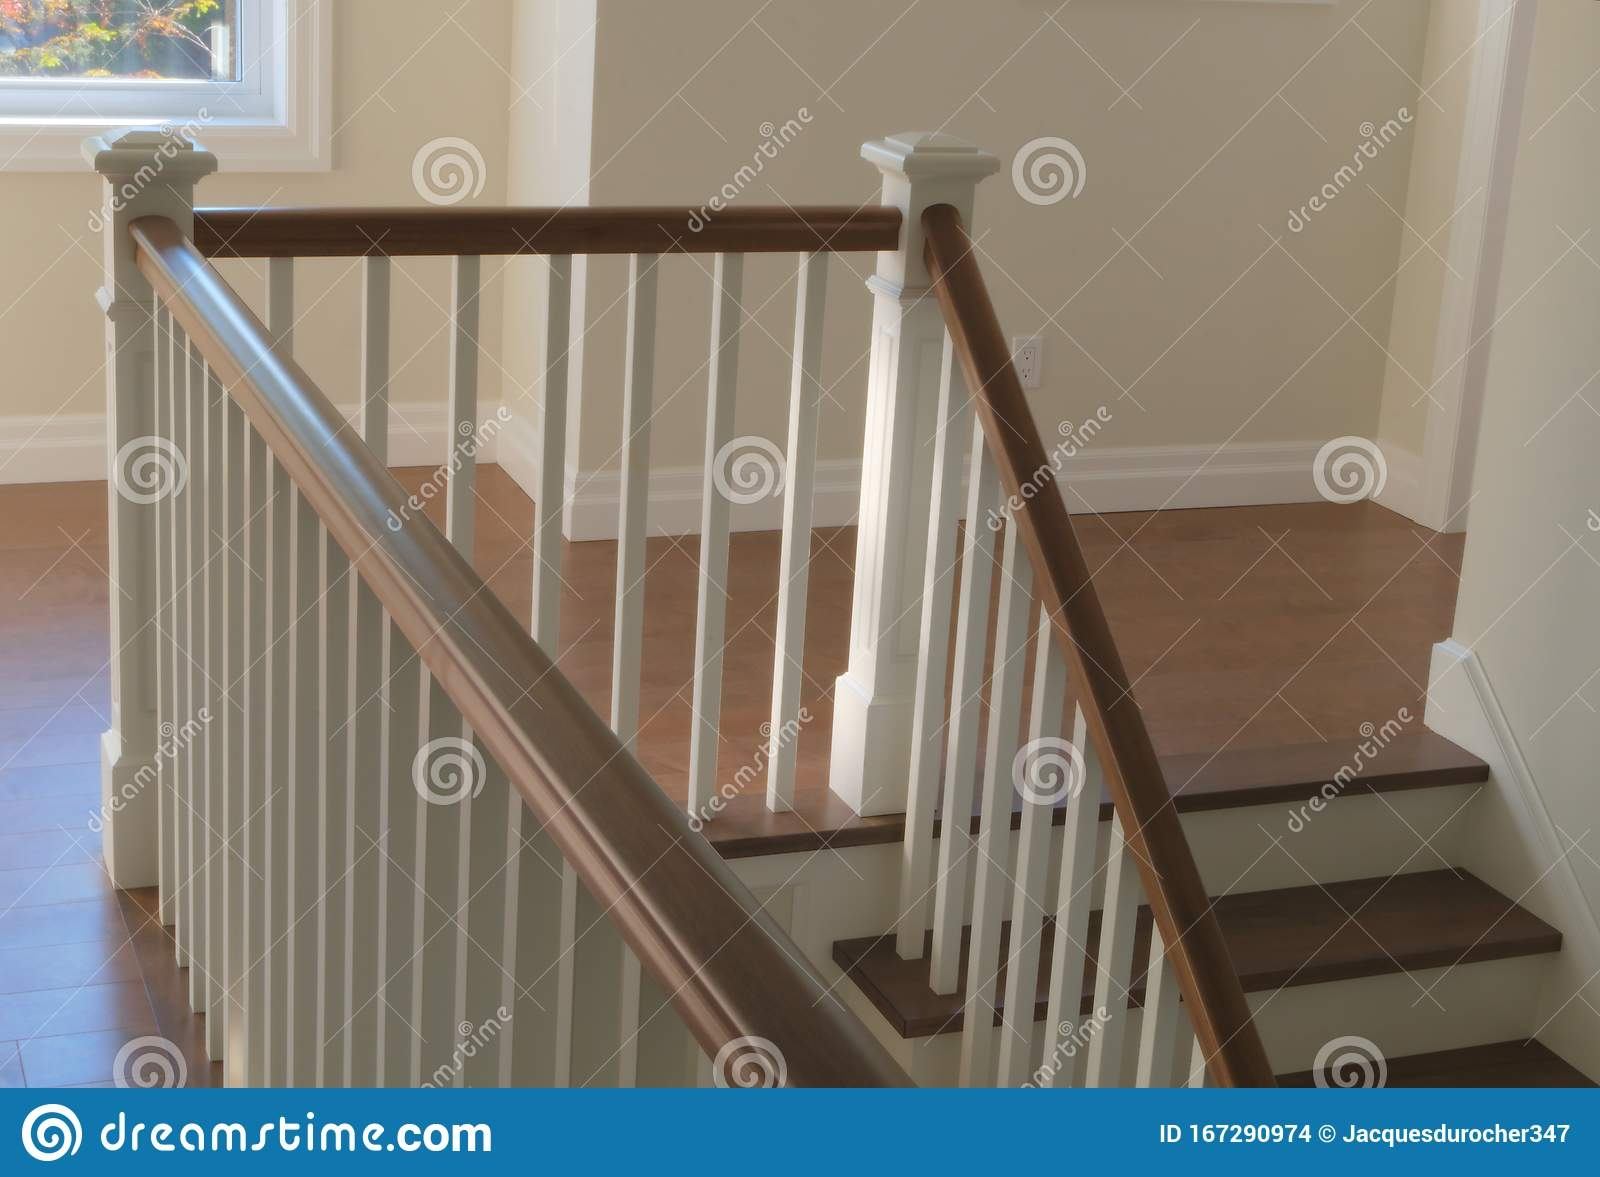 Staircase Wood White Modern Classic Stairs Interior Stock Photo   White And Wood Banister   Stairwell   Gray White   Contemporary   Classic Wood Stair   Colonial